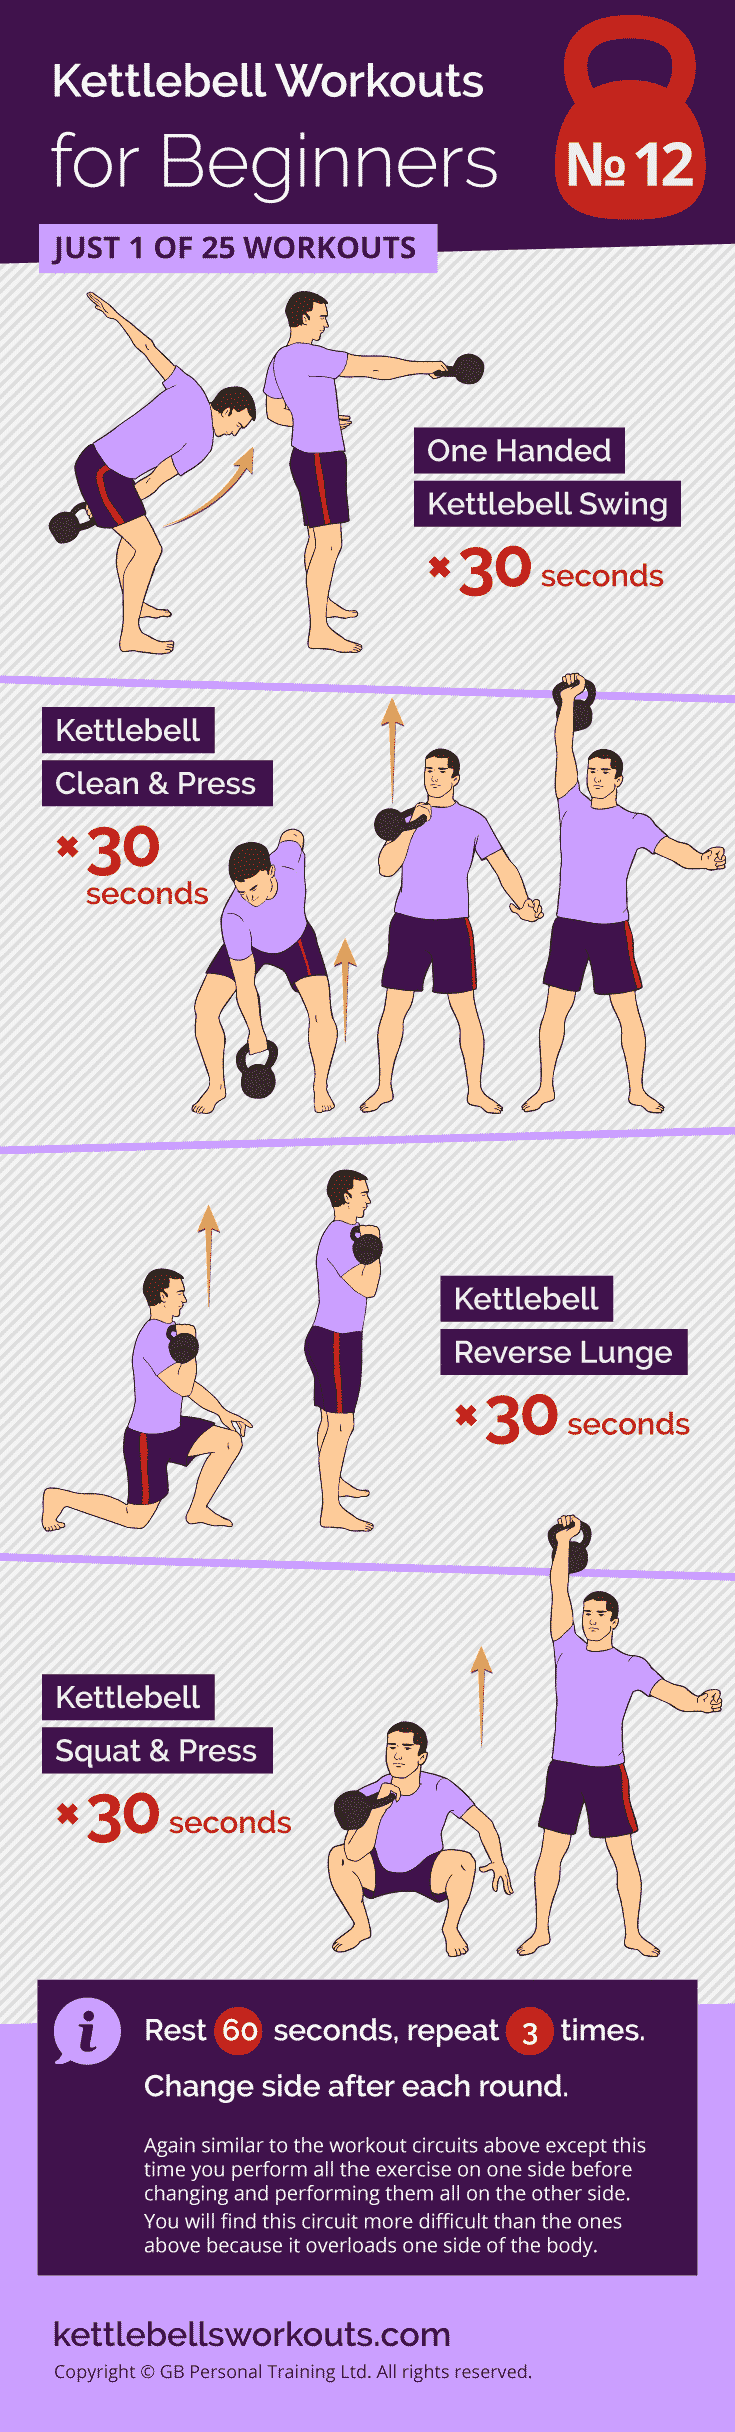 Kettlebell Circuit Overload Workout